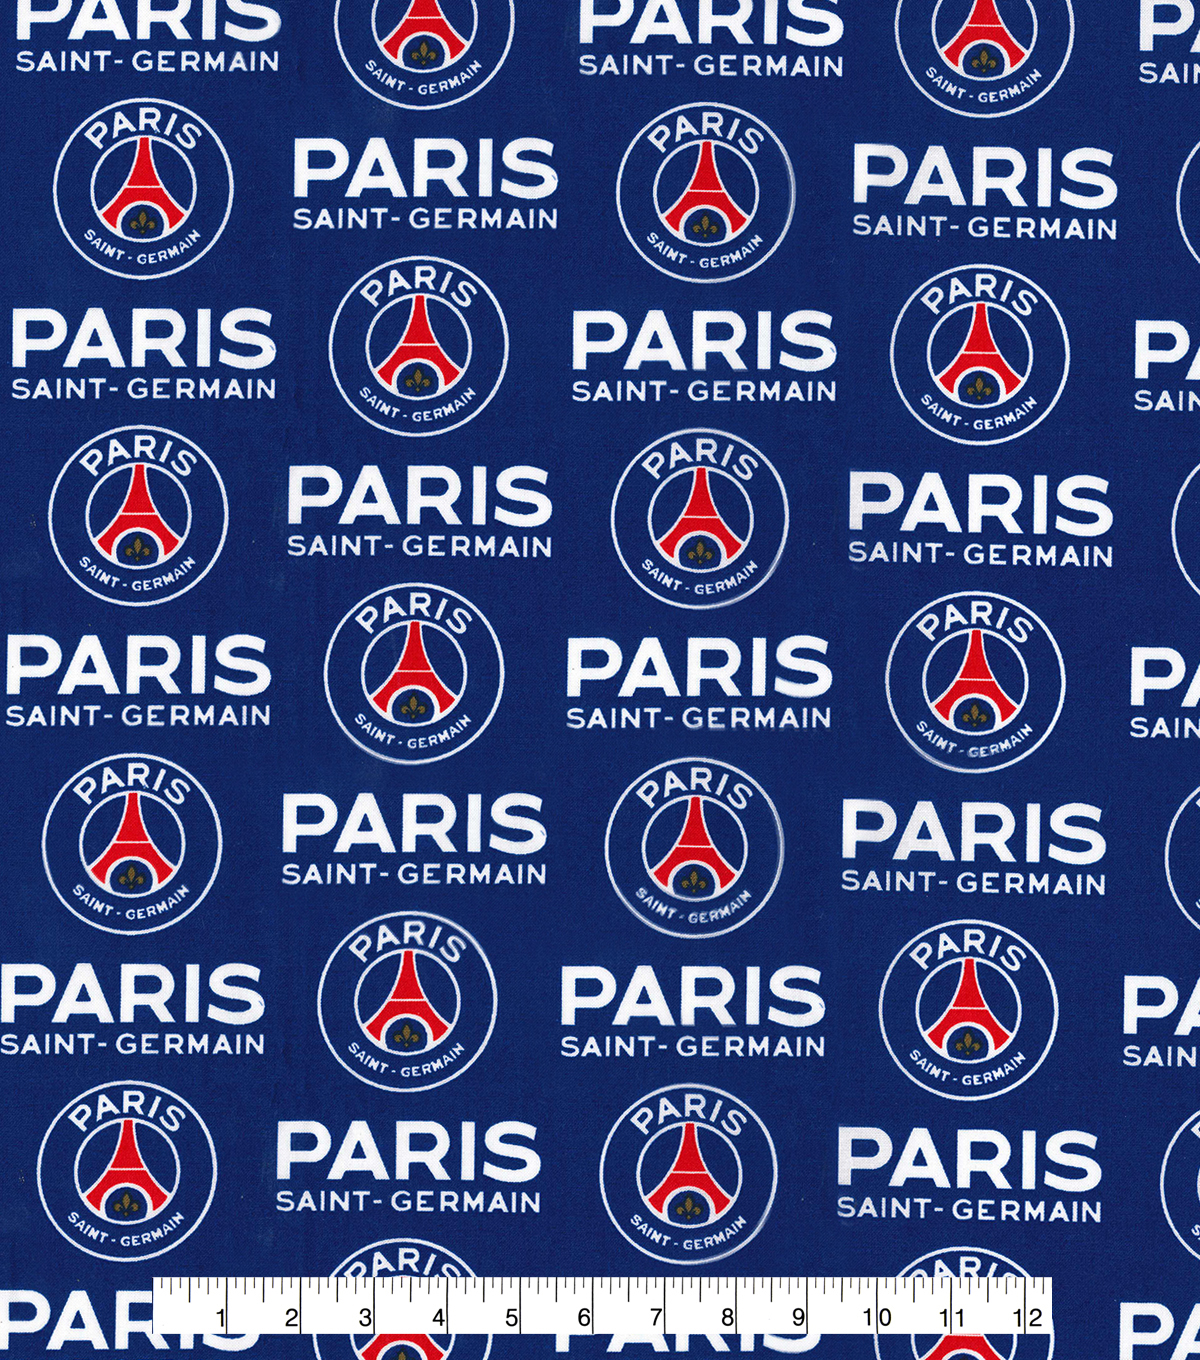 5d0aa8d6685 Paris Saint-Germain Football Club Cotton Fabric | JOANN